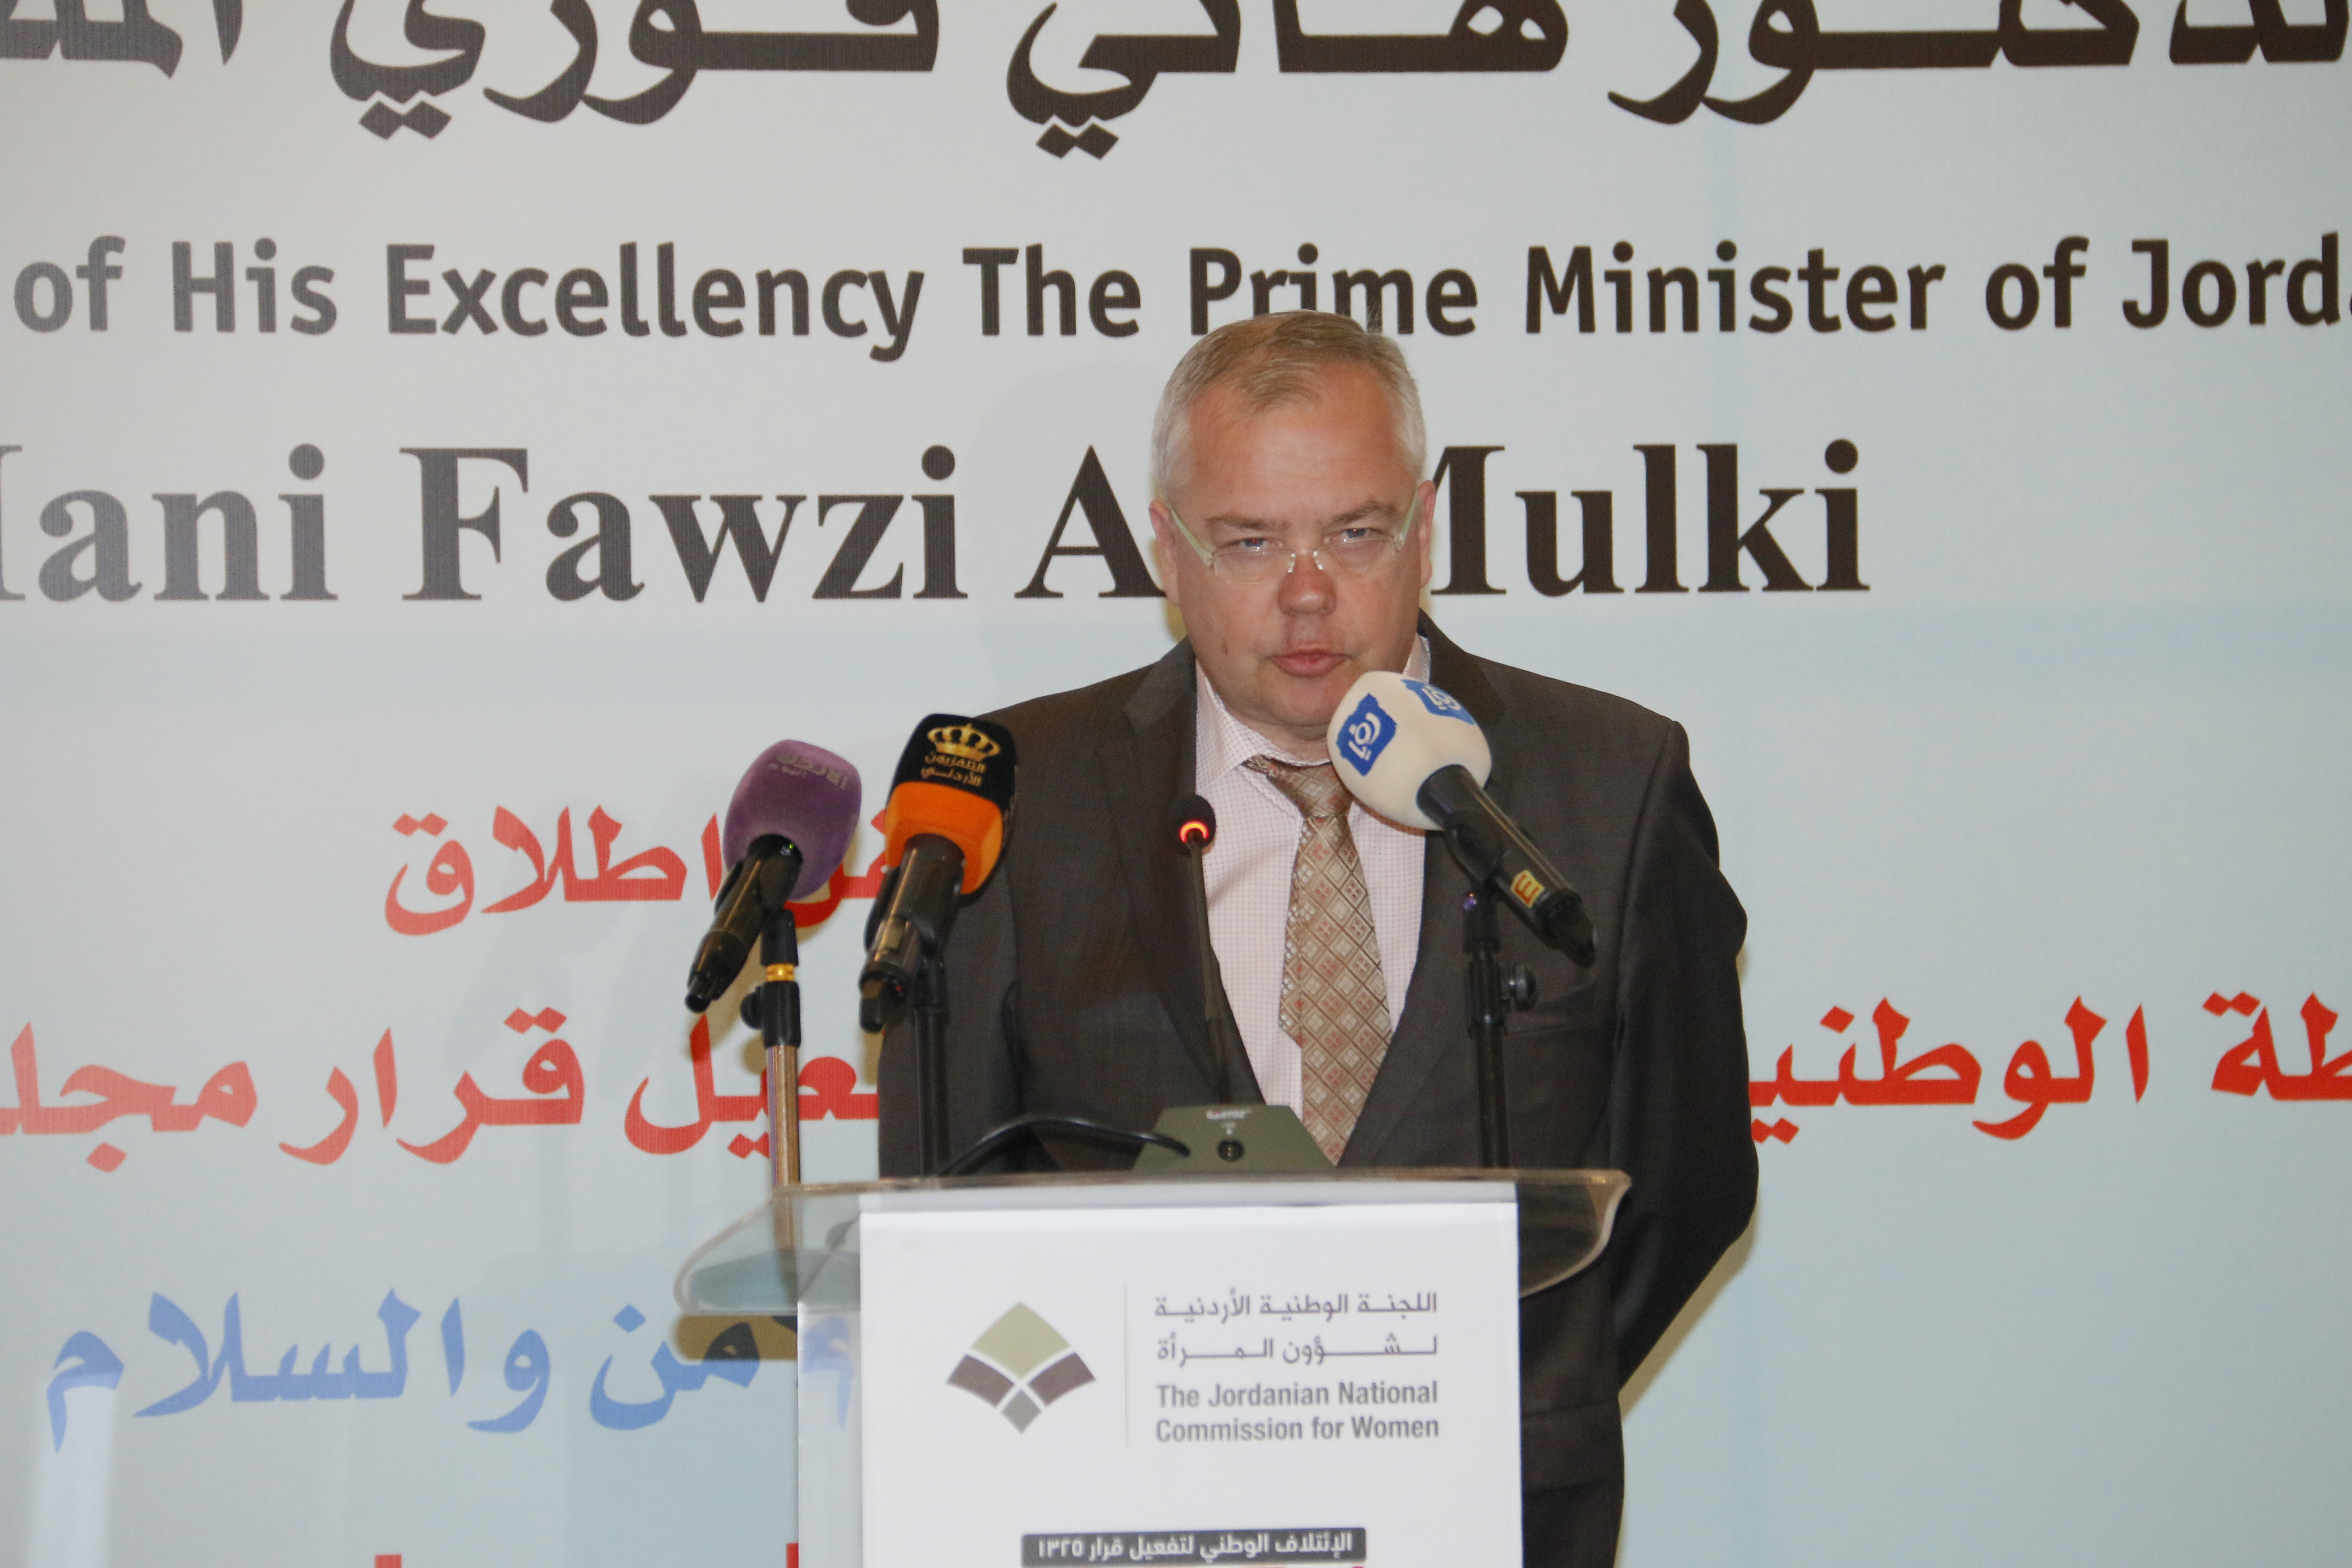 The Ambassador of the Republic of Finland to Lebanon and Jordan, H.E Mr. Matti Lassila addresses the audience of the event during the opening remarks of the ceremony.